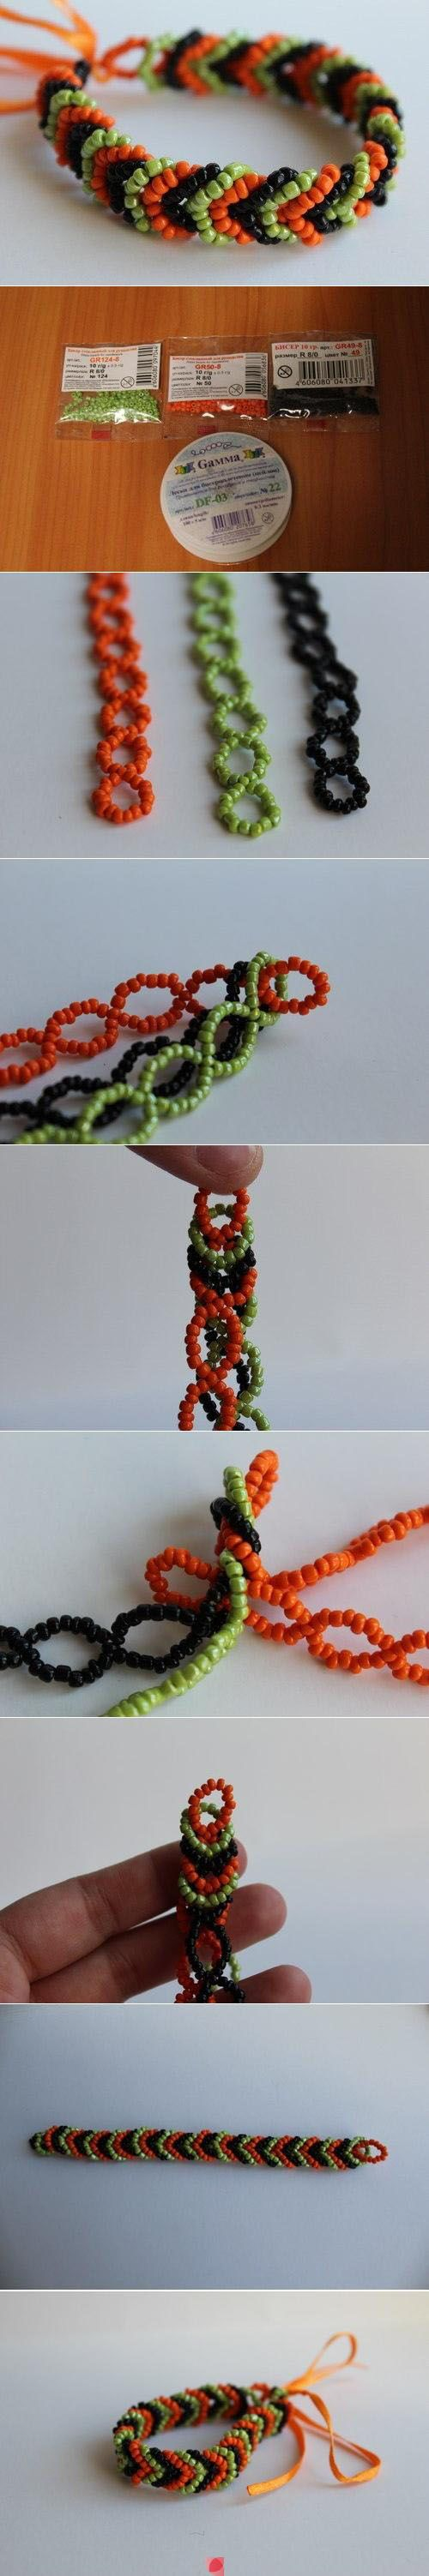 ..layered seed bead rope bracelet